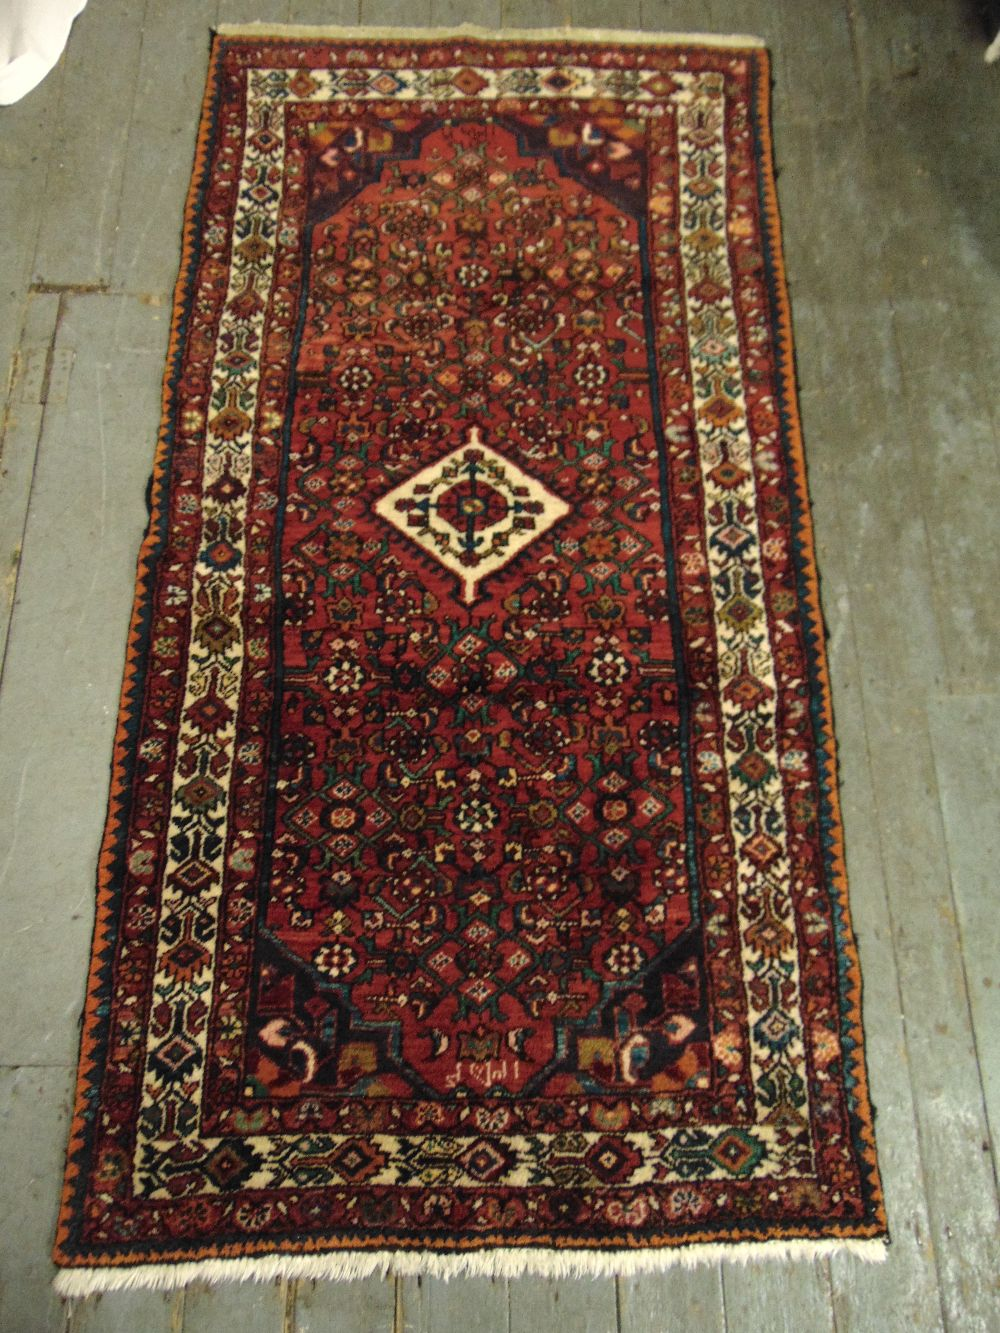 Lot 35 - Persian wool runner red ground with green and blue repeating pattern and cream border, 200 x 104cm